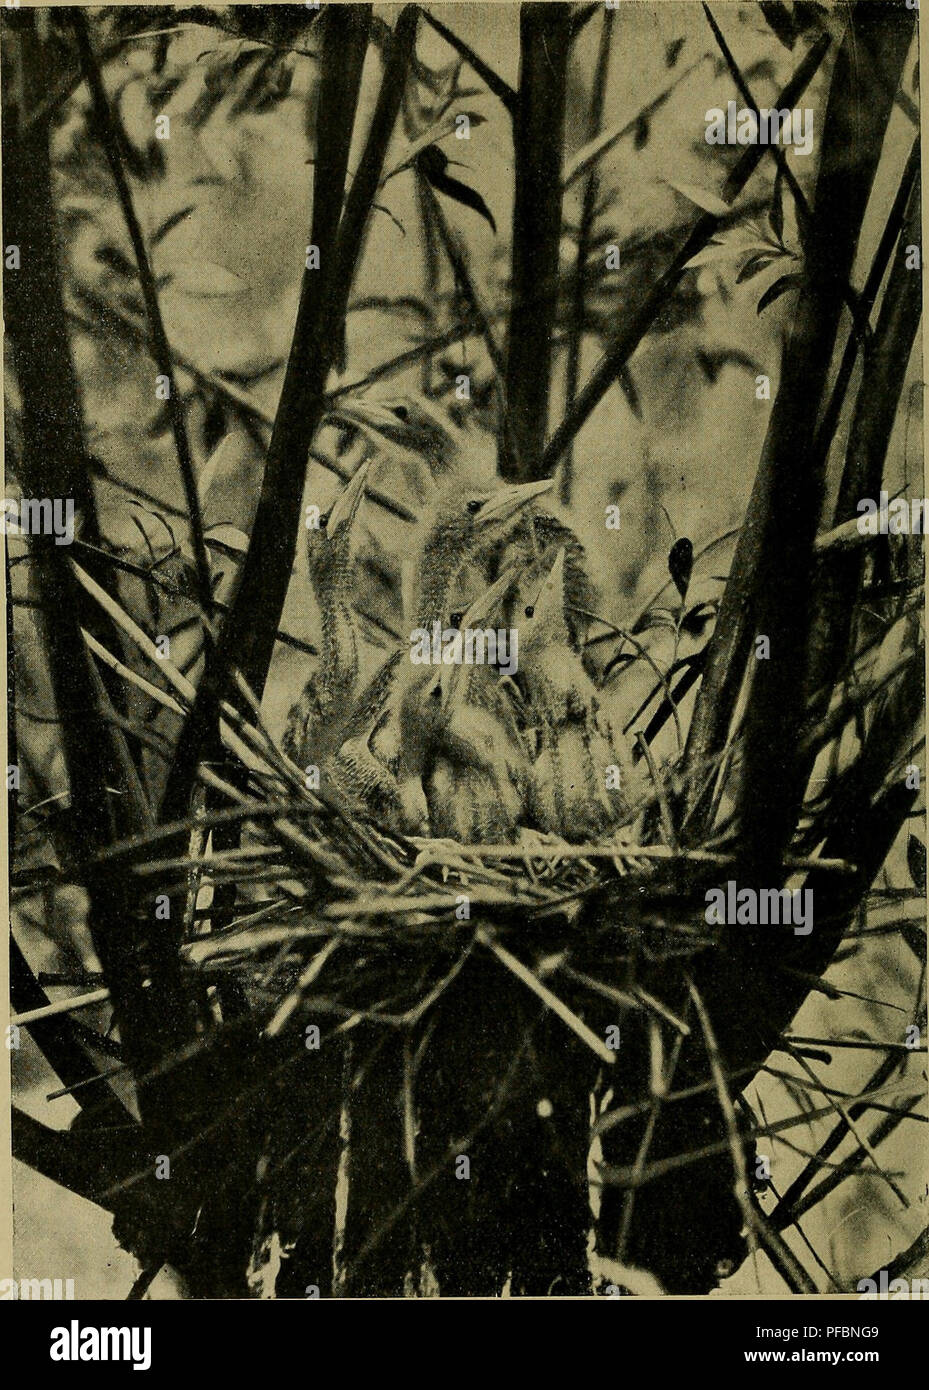 ". Der Ornithologische Beobachter. Ornithology; Birds. Junge Zwergrohrdommeln (Ardetta minuta). Nest am Bielersee. Beilage zum ""Ornithologischen Beobachter^', Heft o, 1921/2: 0 fi, C. Z6INQENS0«, flAsa. Please note that these images are extracted from scanned page images that may have been digitally enhanced for readability - coloration and appearance of these illustrations may not perfectly resemble the original work.. Ala, société suisse pour l'étude des oiseaux et leur protection. [Bern? : Ala, Schweizerische Gesellschaft für Vogelkunde und Vogelschutz] - Stock Image"